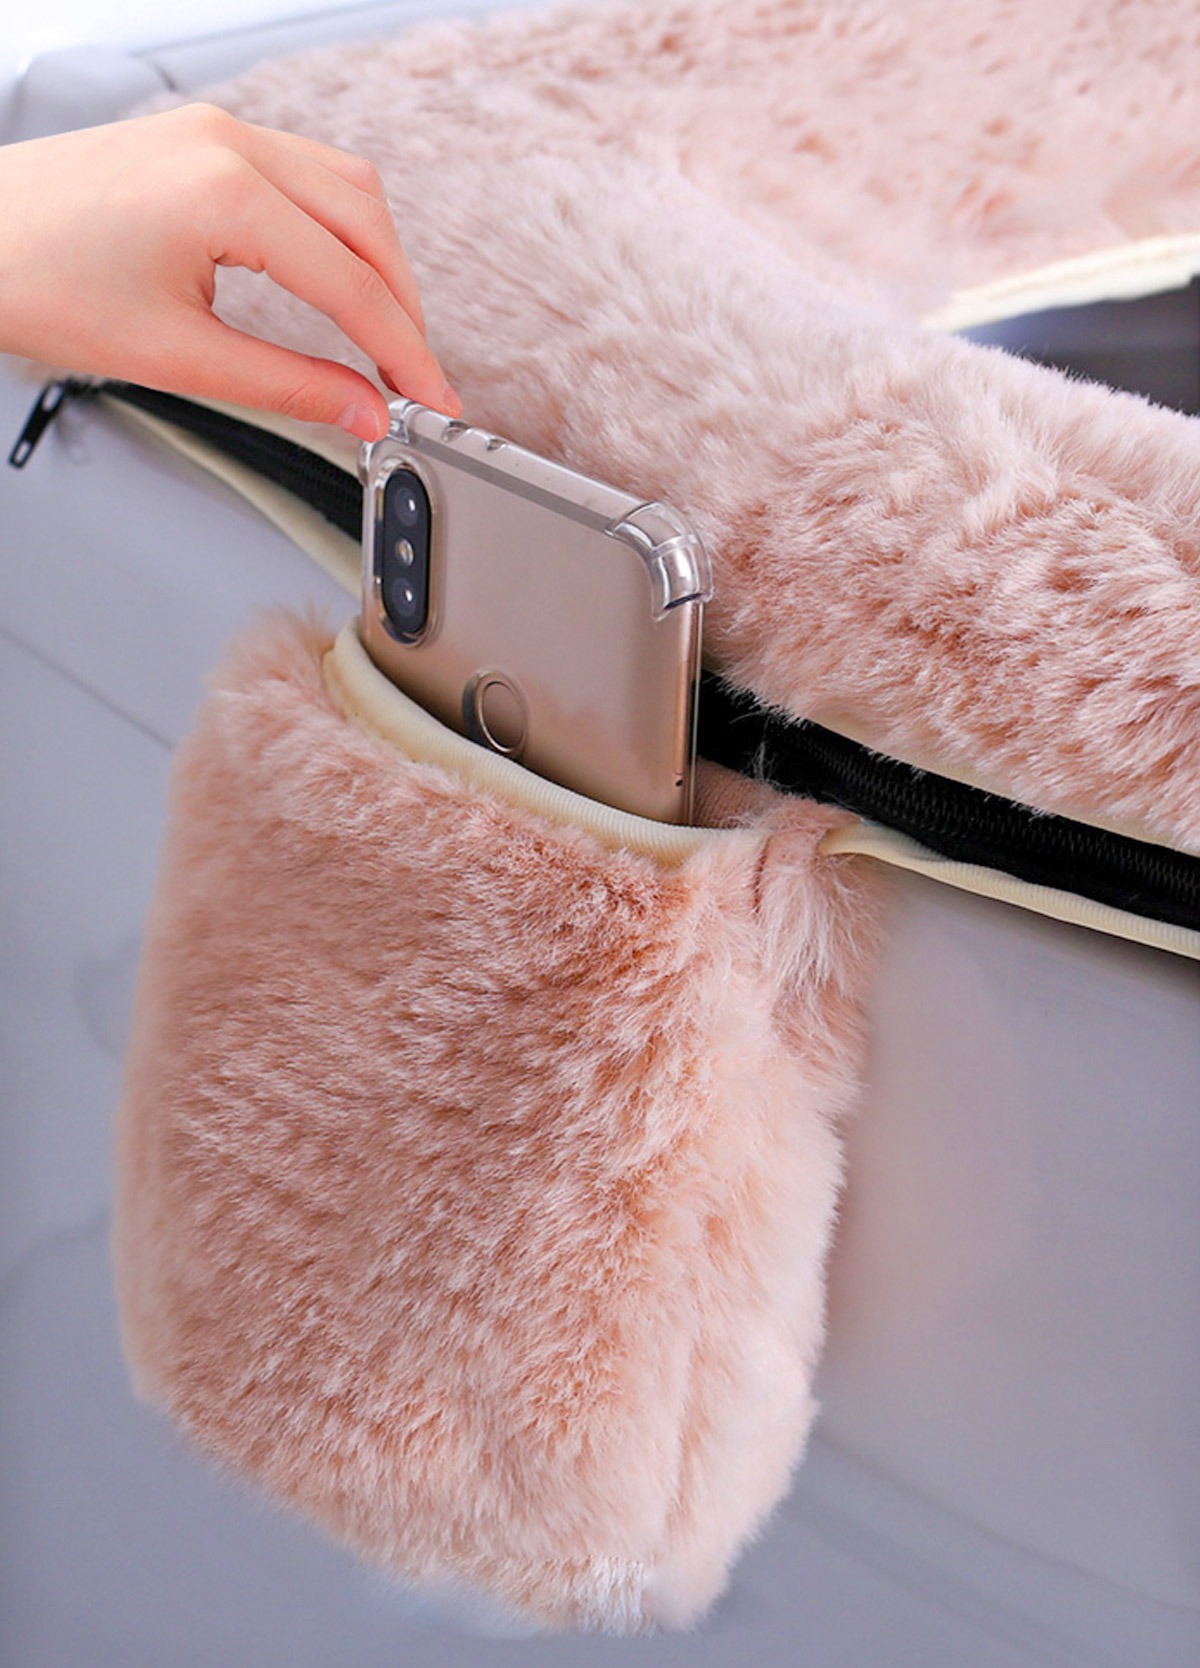 Fluffy Toilet Seat Cover With Phone Pocket Holder and Fluffy Handle